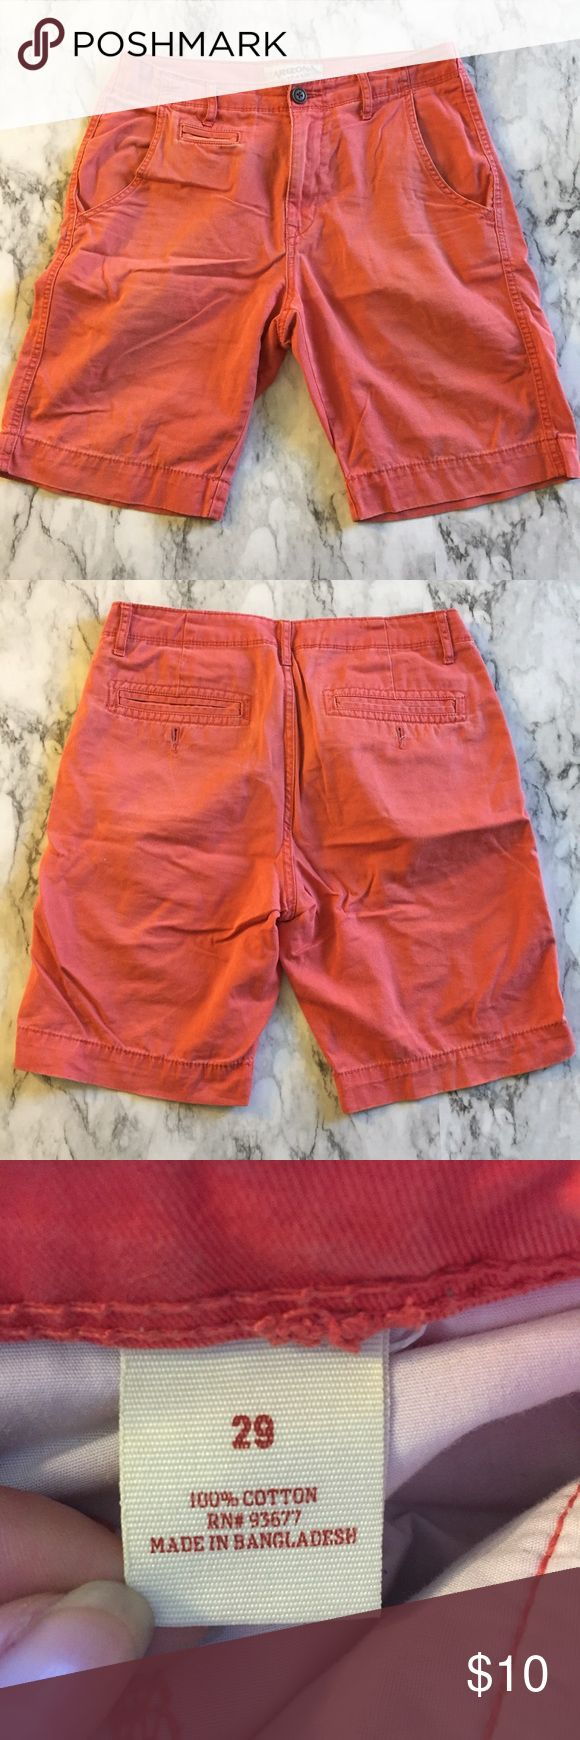 ARIZONA Mens Shorts Men's Arizona Shorts in size 29 in a salmon color. 100% Cotton. Runs true to size. Shorts have 2 front, 2 back, and one small front pocket. No holes, stains, or snags. Some light fraying on the edges of the shorts as shown in some of the pictures. No trades. Arizona Jean Company Shorts Jean Shorts